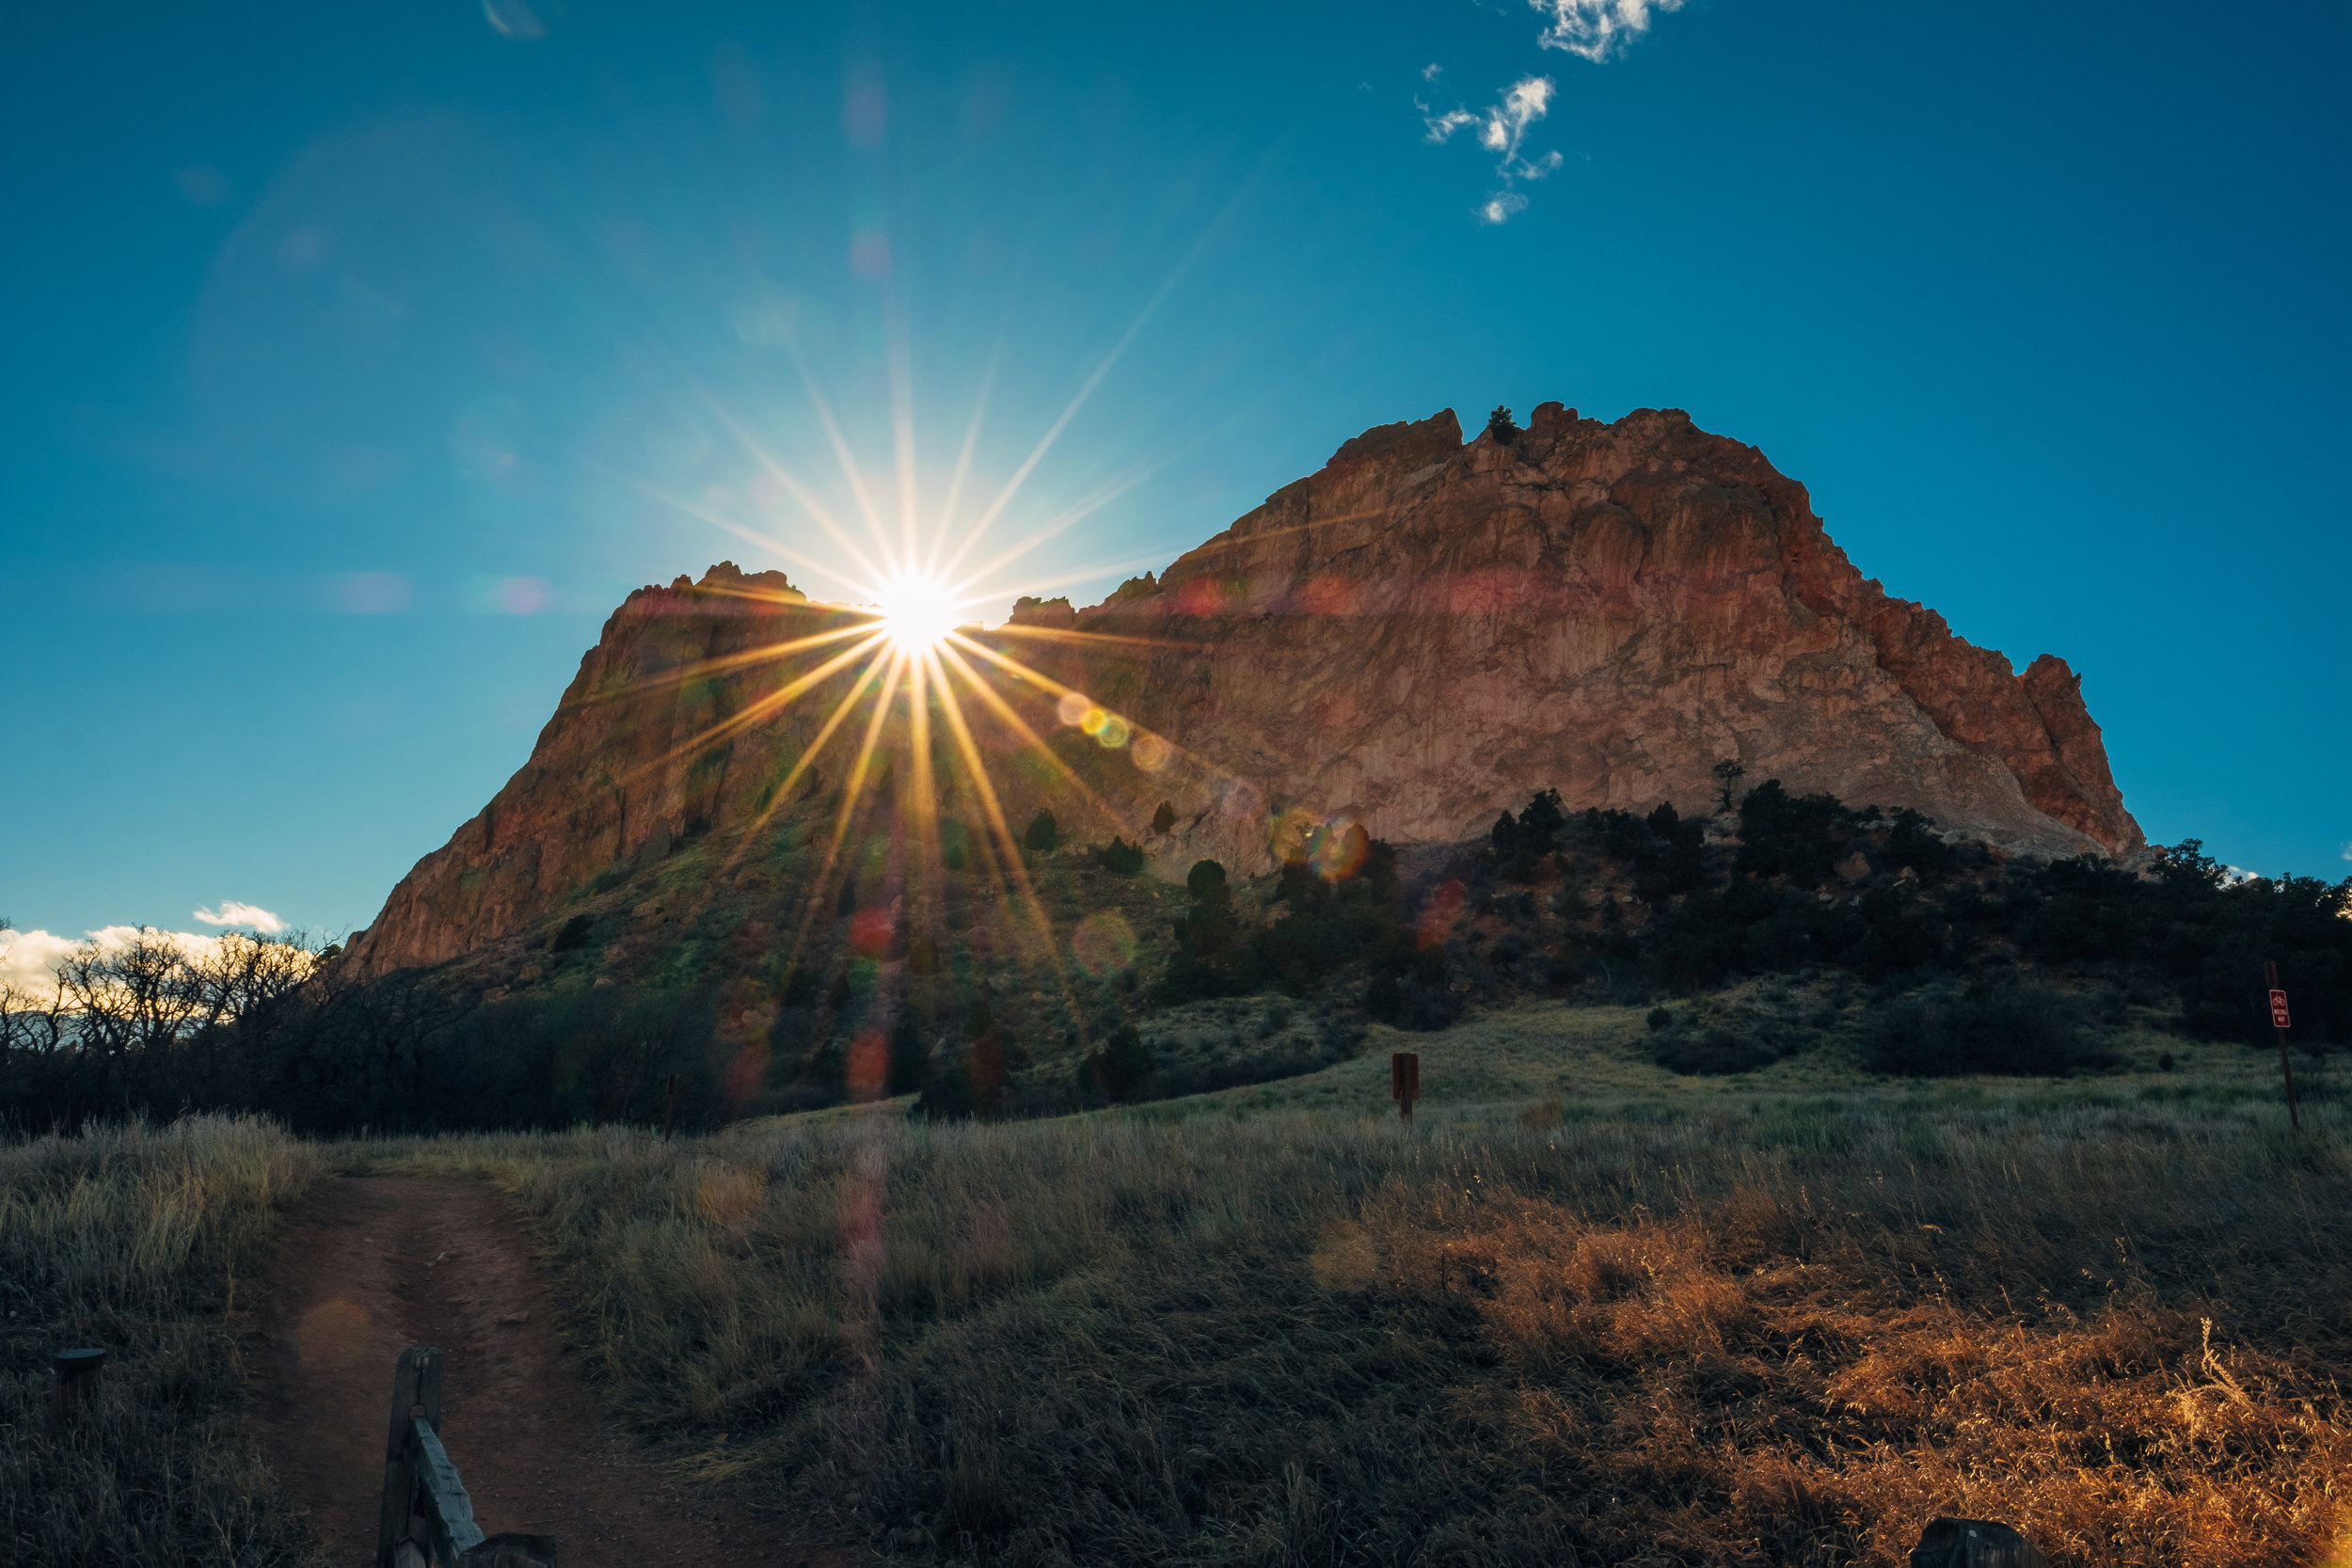 Garden of the Gods, CO. Photo credit: Tim Griffin.